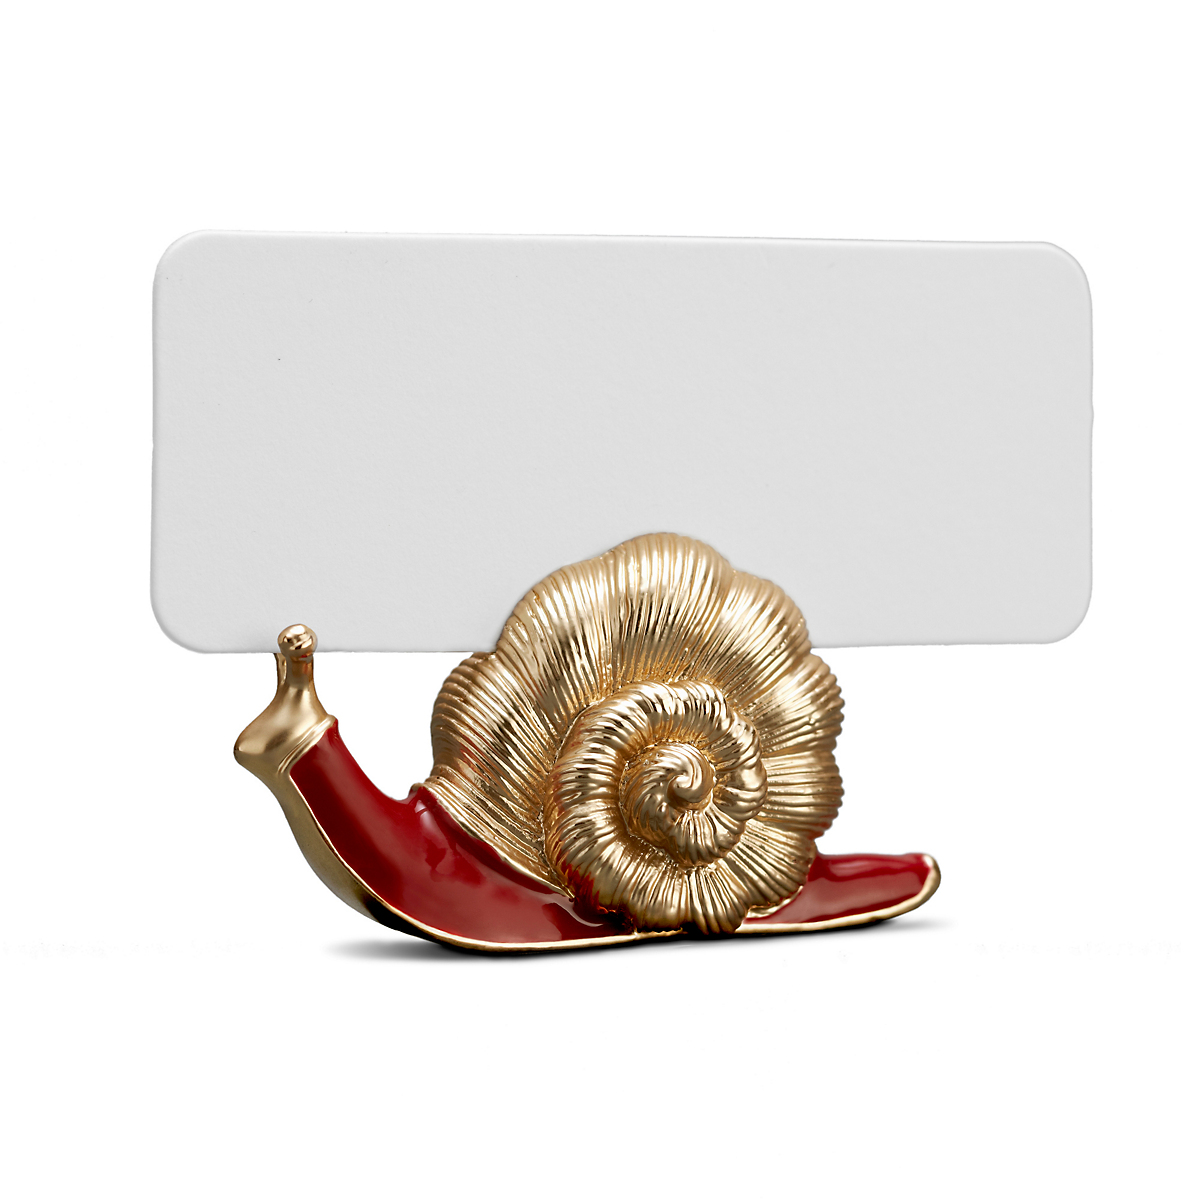 L'Objet Snail Placecard Holders, Set of 6